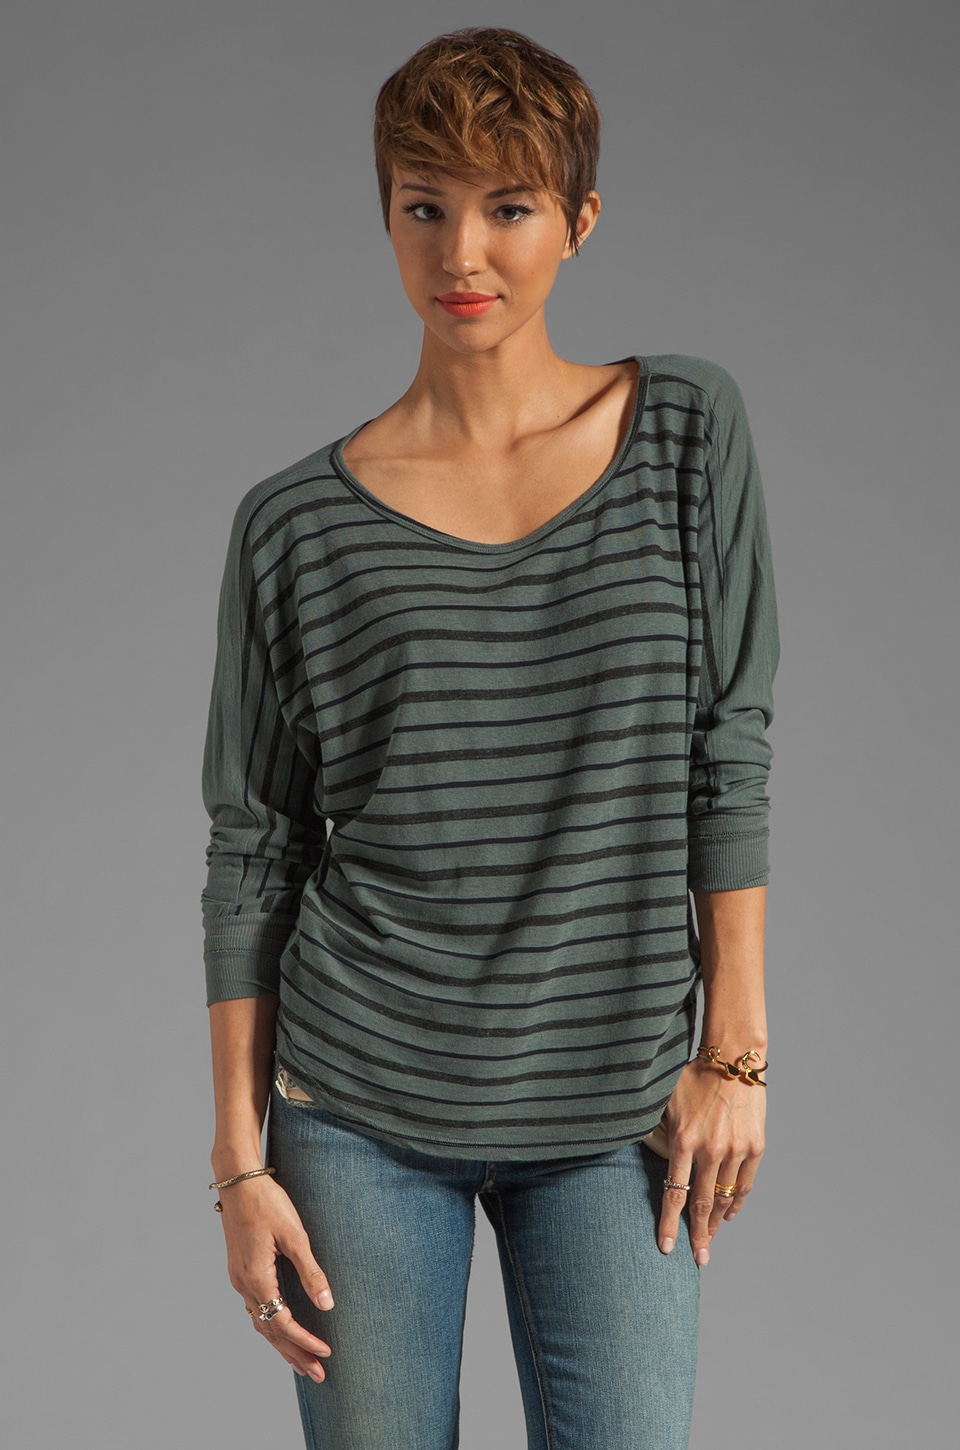 Market Onyx Stripe Frida Sweater in Kohl